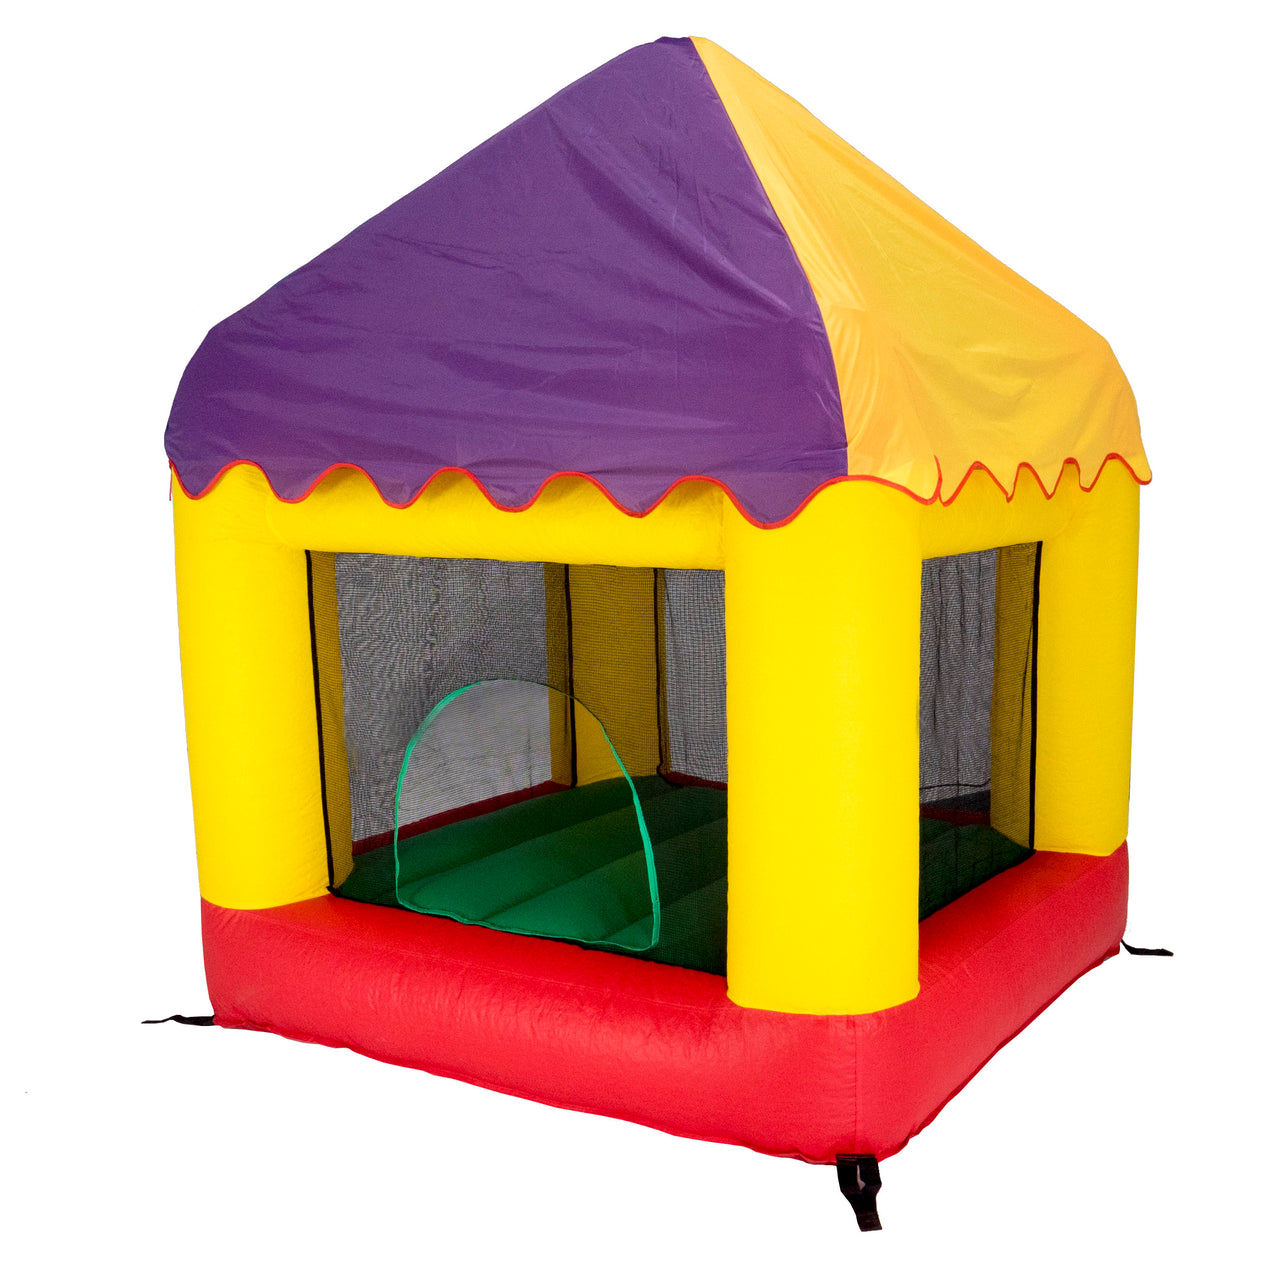 Bazoongi 6.25' X 6' Bounce House Combo (With Circus Cover) Bh66Or + Bhcc